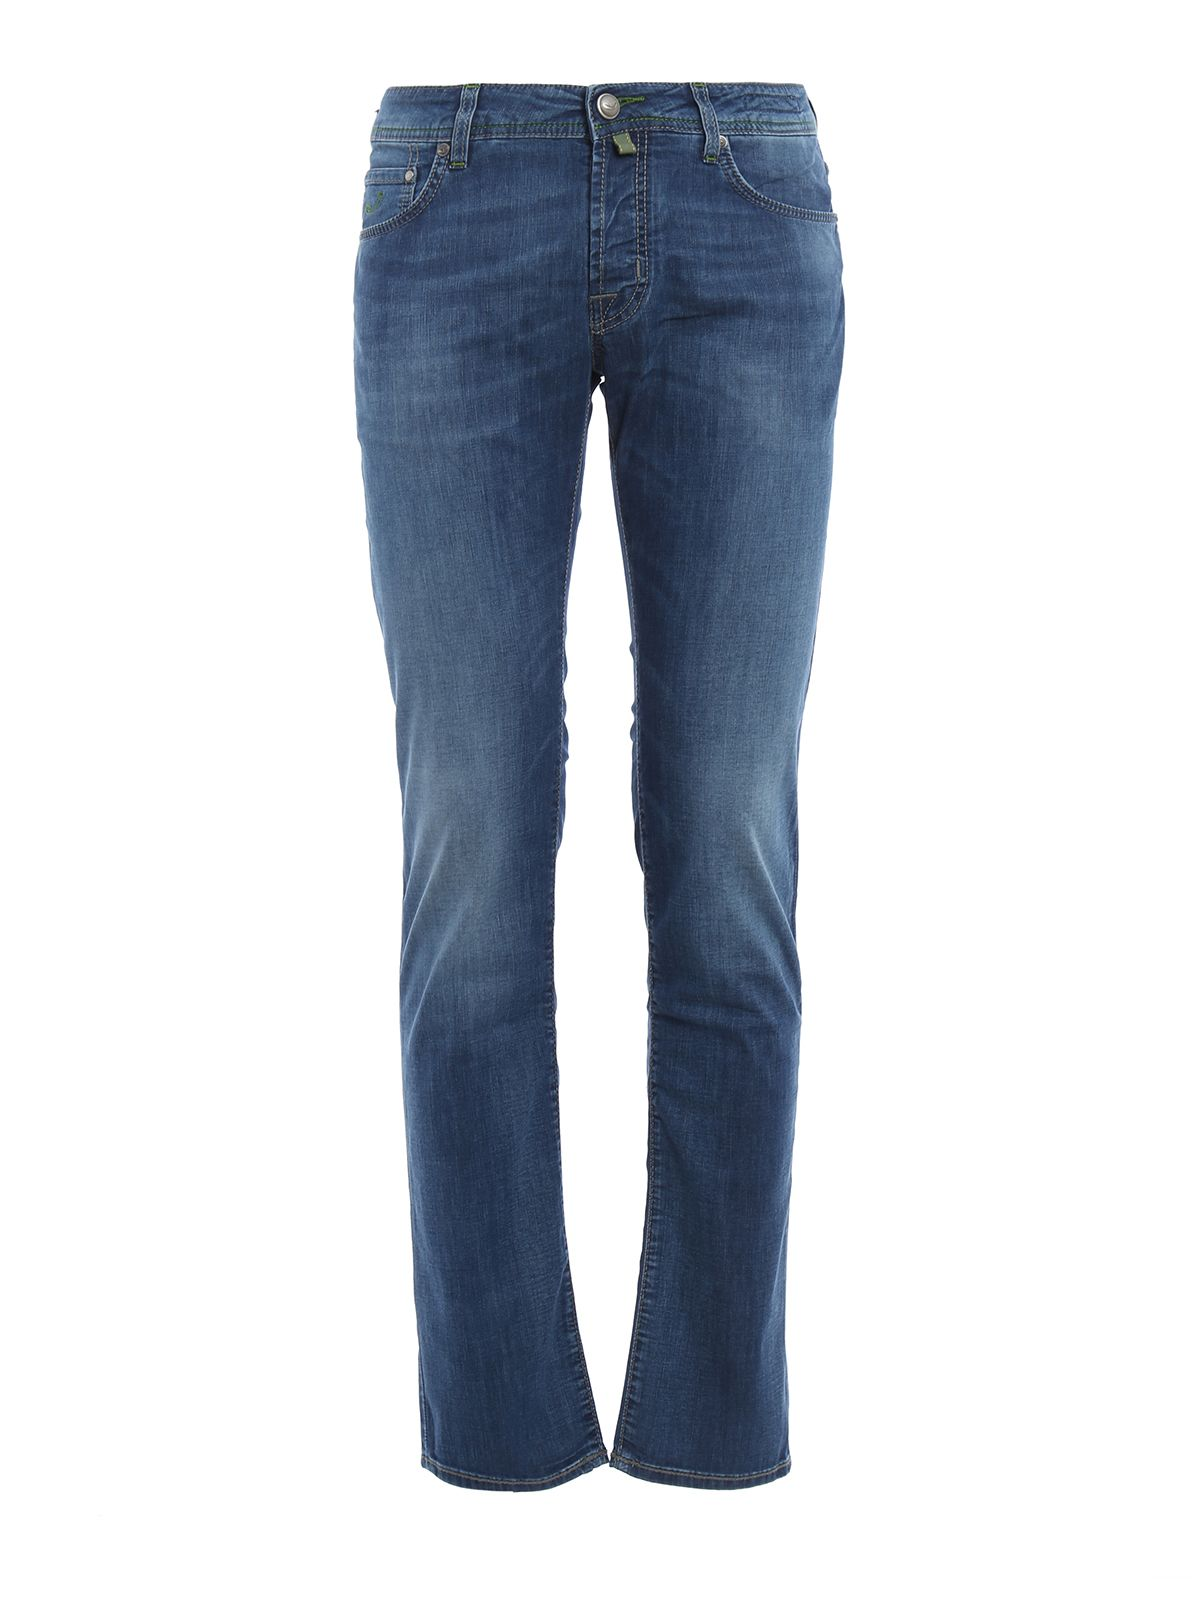 Pw622 Green Stitches Denim Jeans